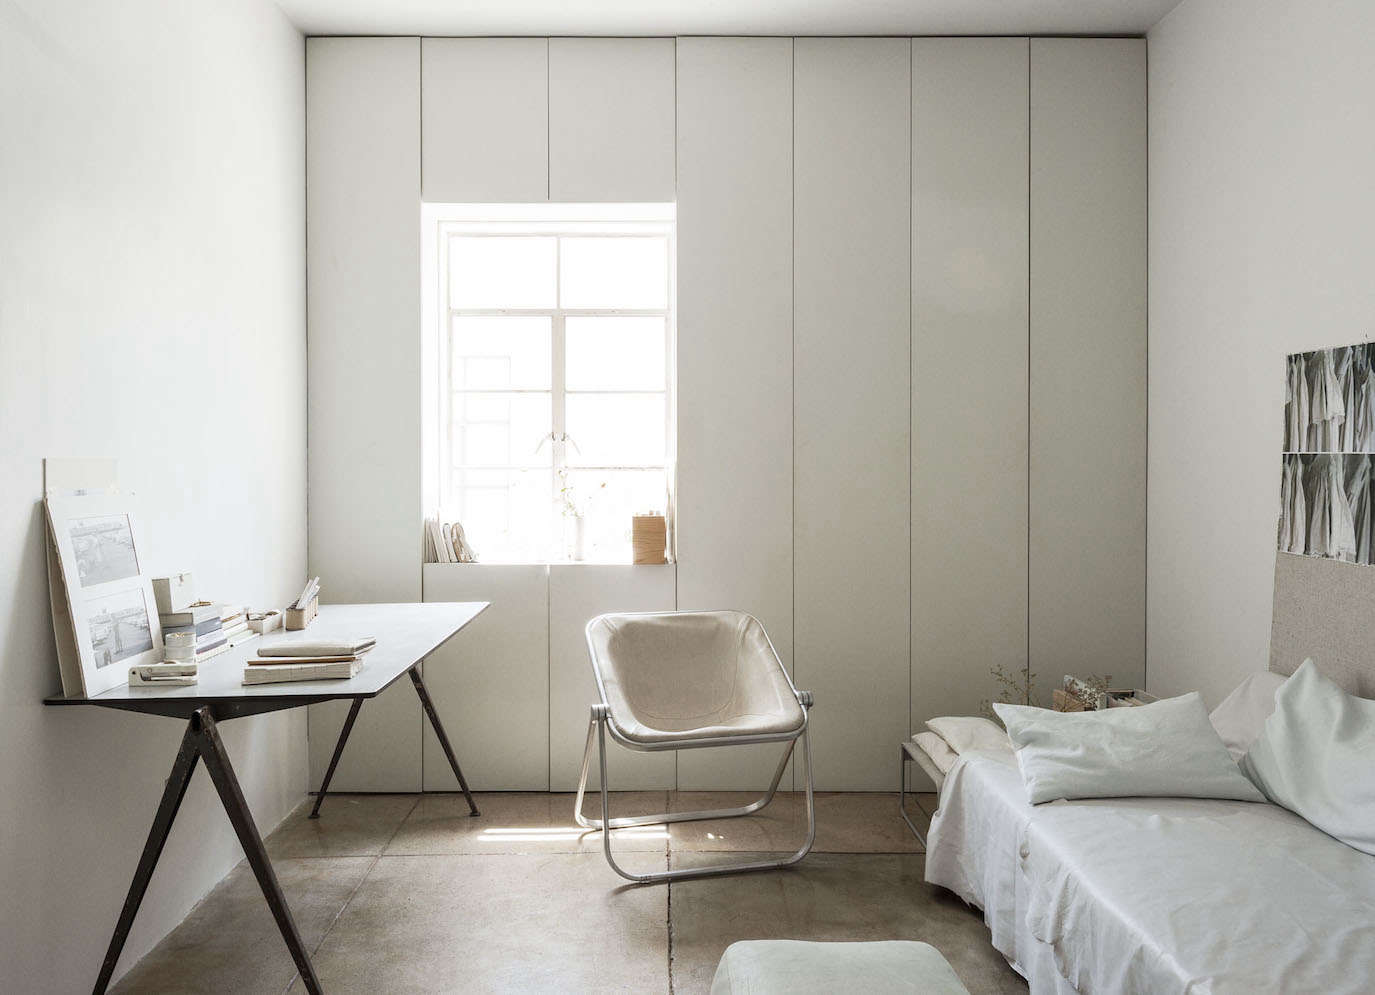 Interior designer Michaela Scherrer mixes her own white paints, including the one she used in her Pasadena guest room, shown here. Learn how she does it in DIY Paint: Designer Michaela Scherrer Mixes Her Own Shades of White. Photograph by Matthew Williams for Remodelista.